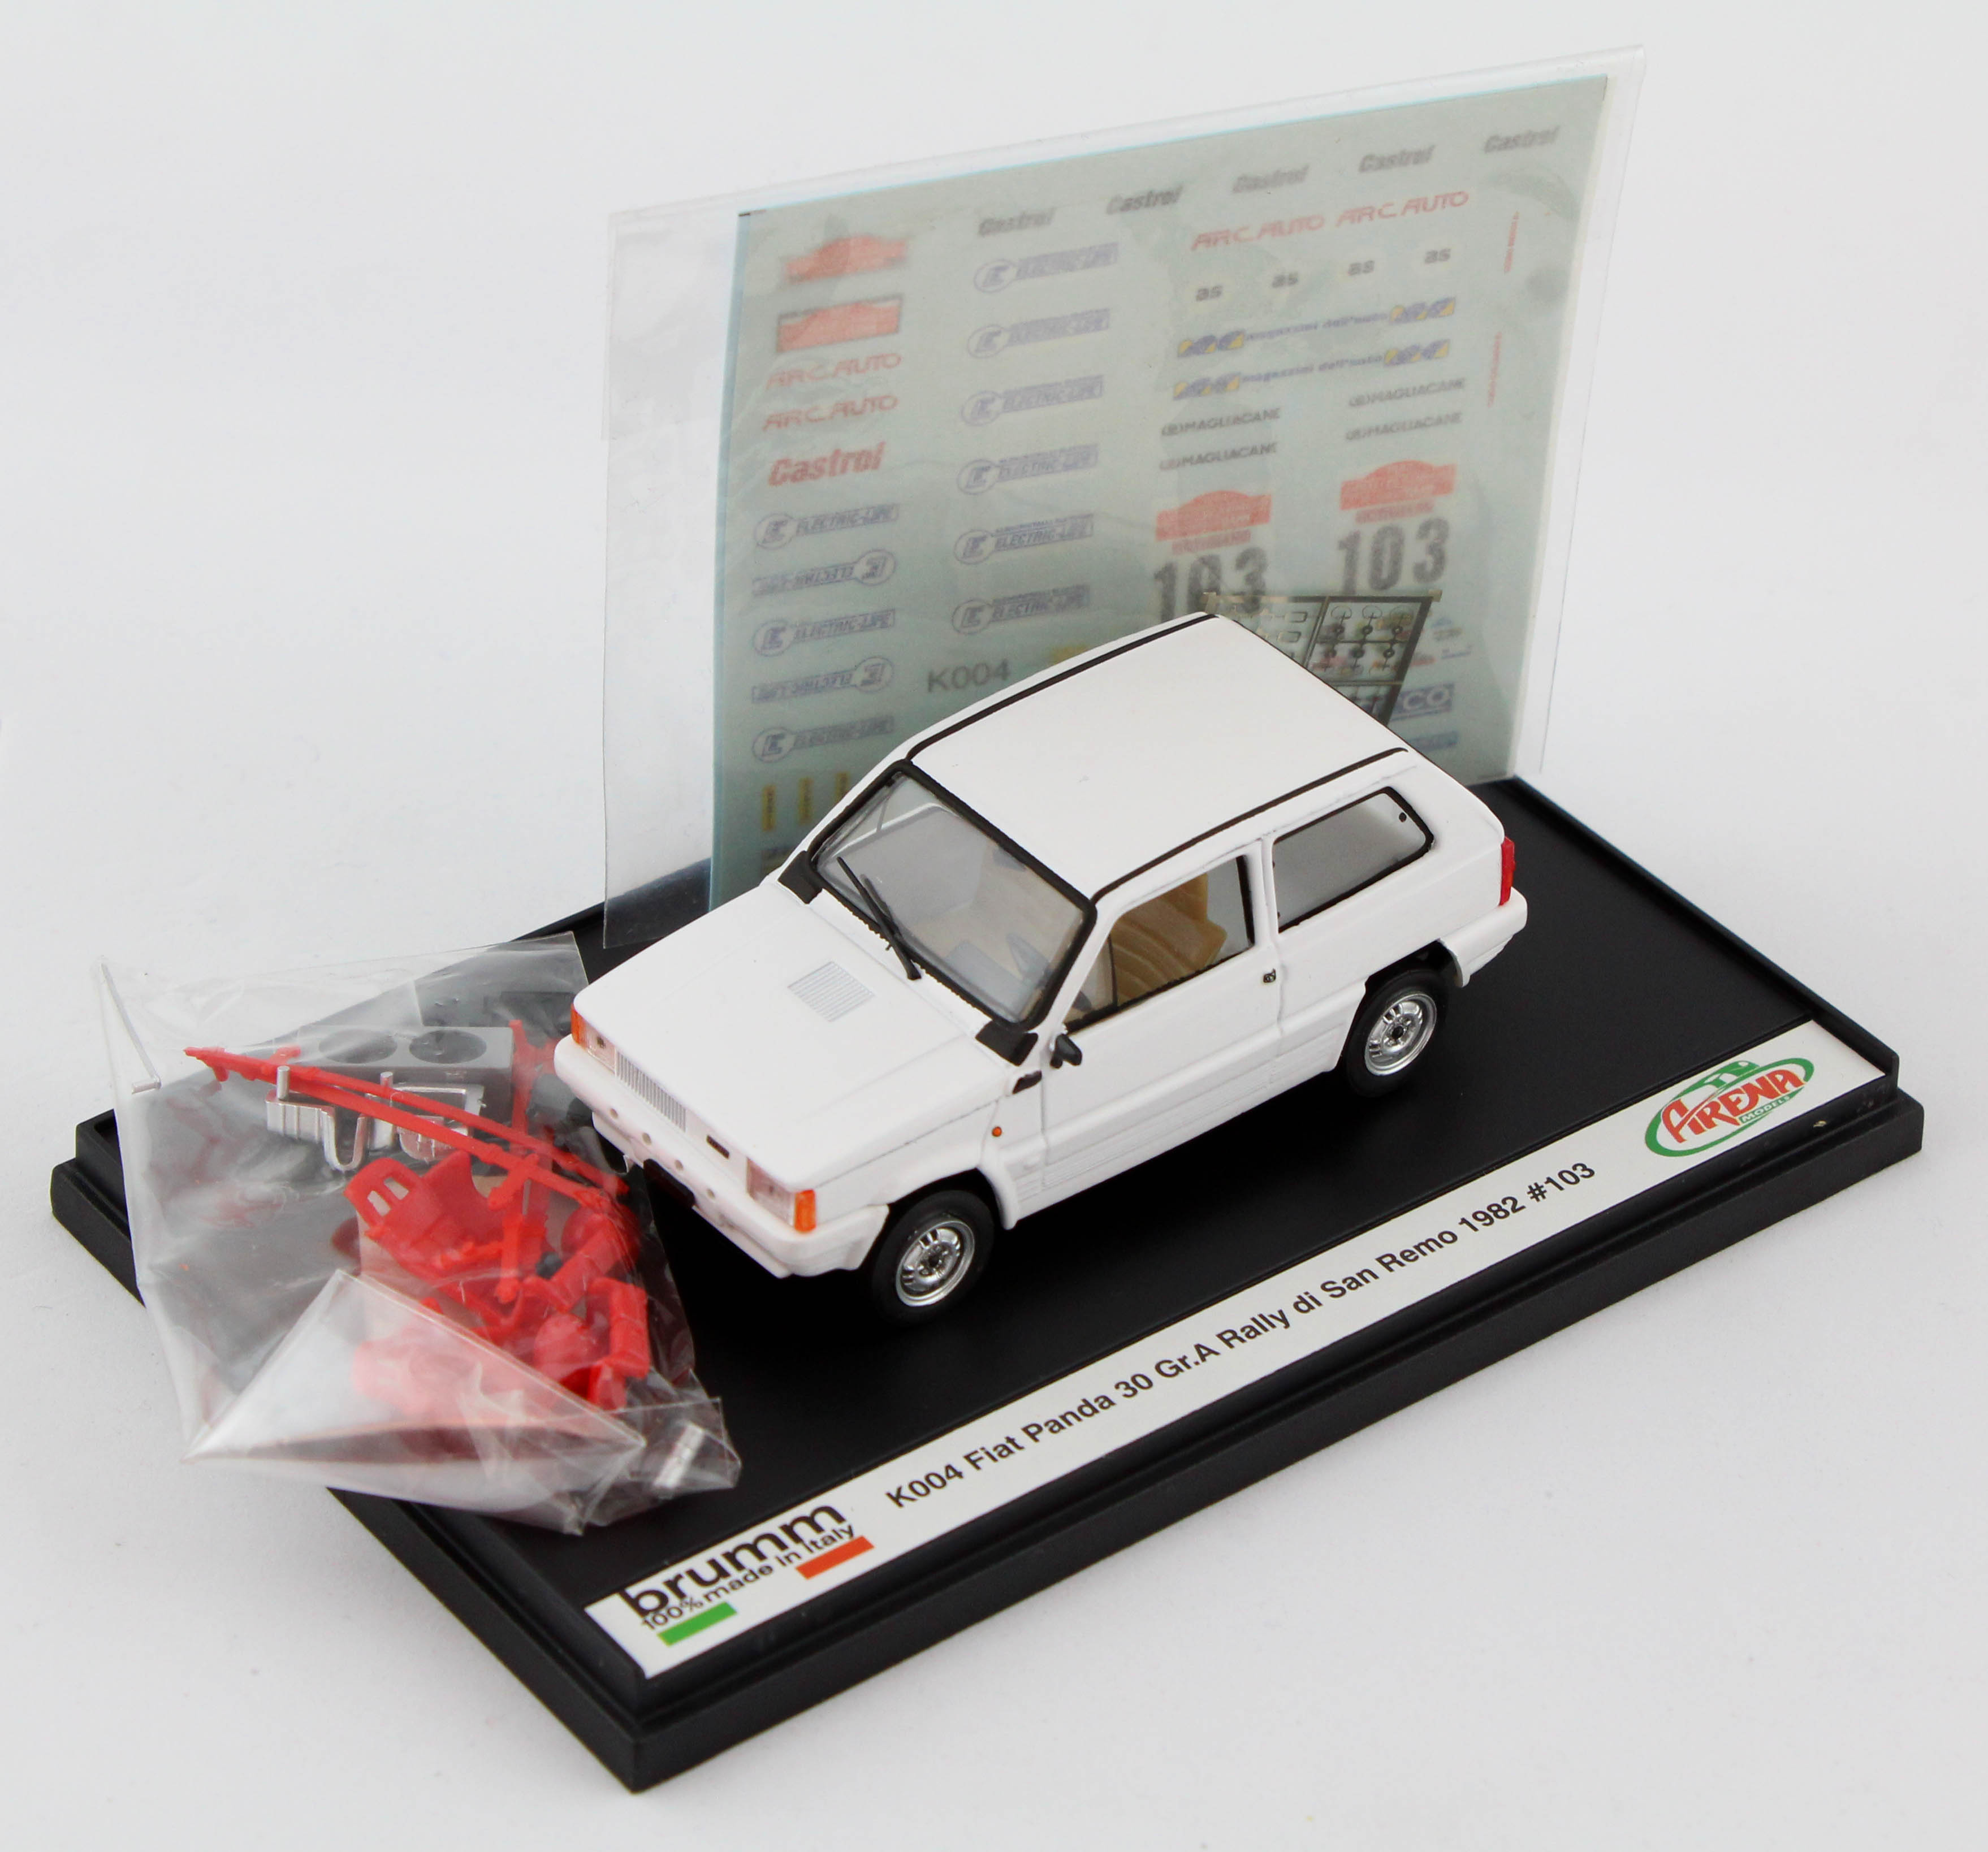 Fiat Panda 30gr.a Rally San Remo 1982 1/43 Brumm 100% Made In Italy